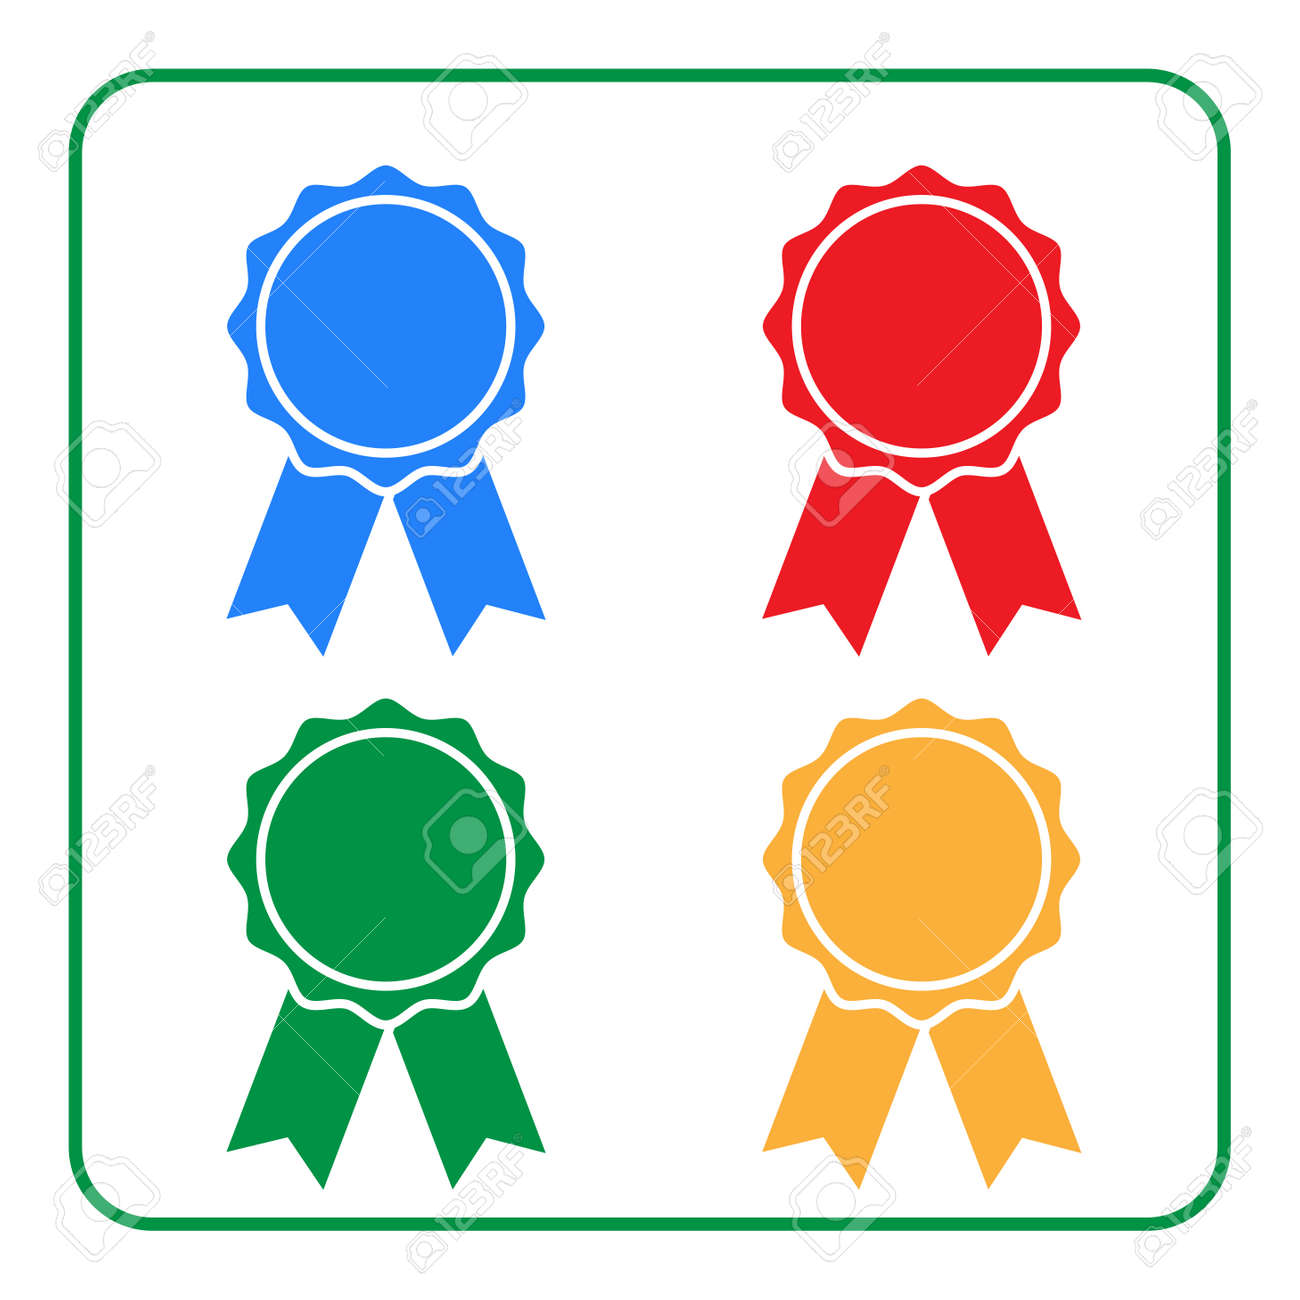 Ribbon award icons set  Blue, red, green, yellow rosette badge,